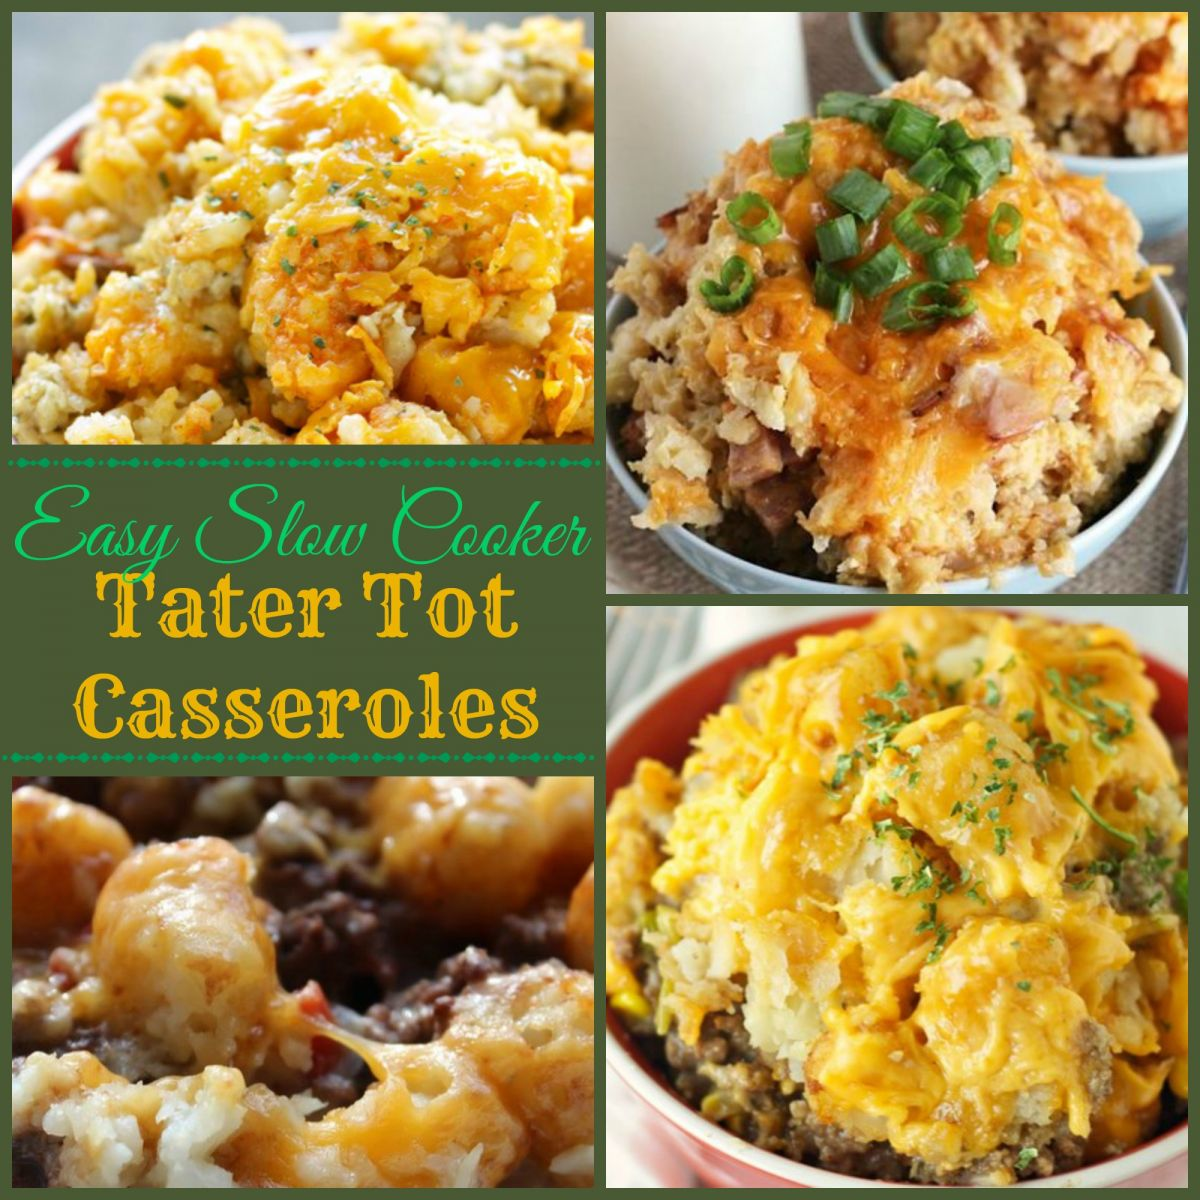 Easy Slow Cooker Tater Tot Casseroles